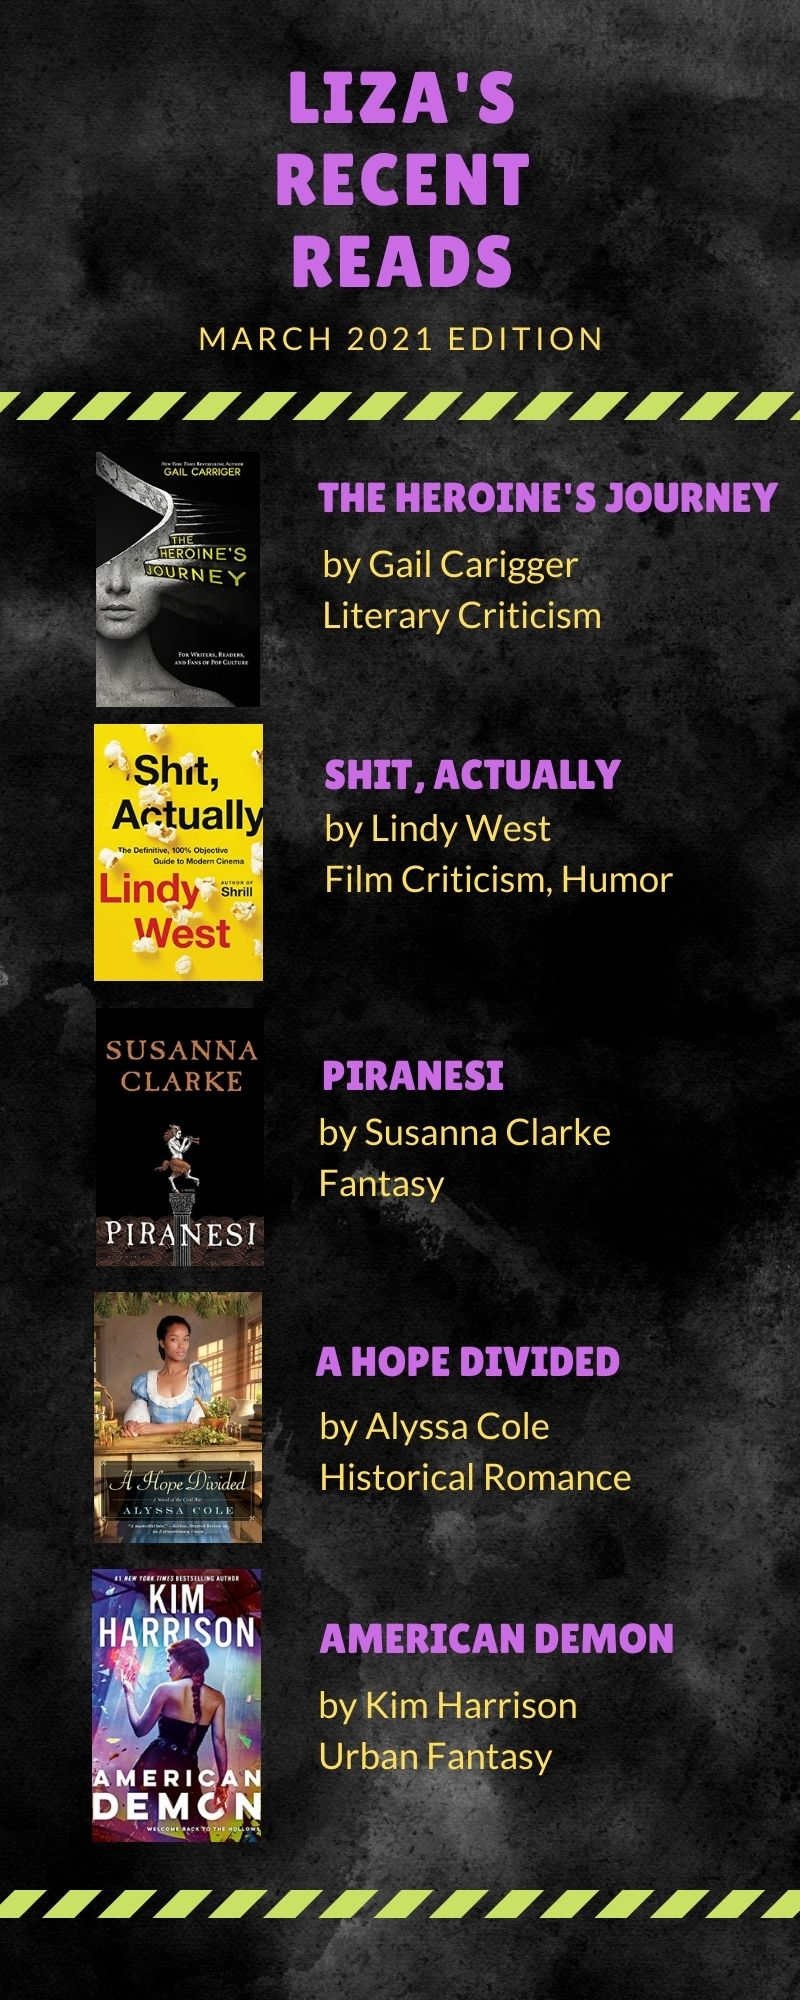 Liza's Recent Reads March 2021